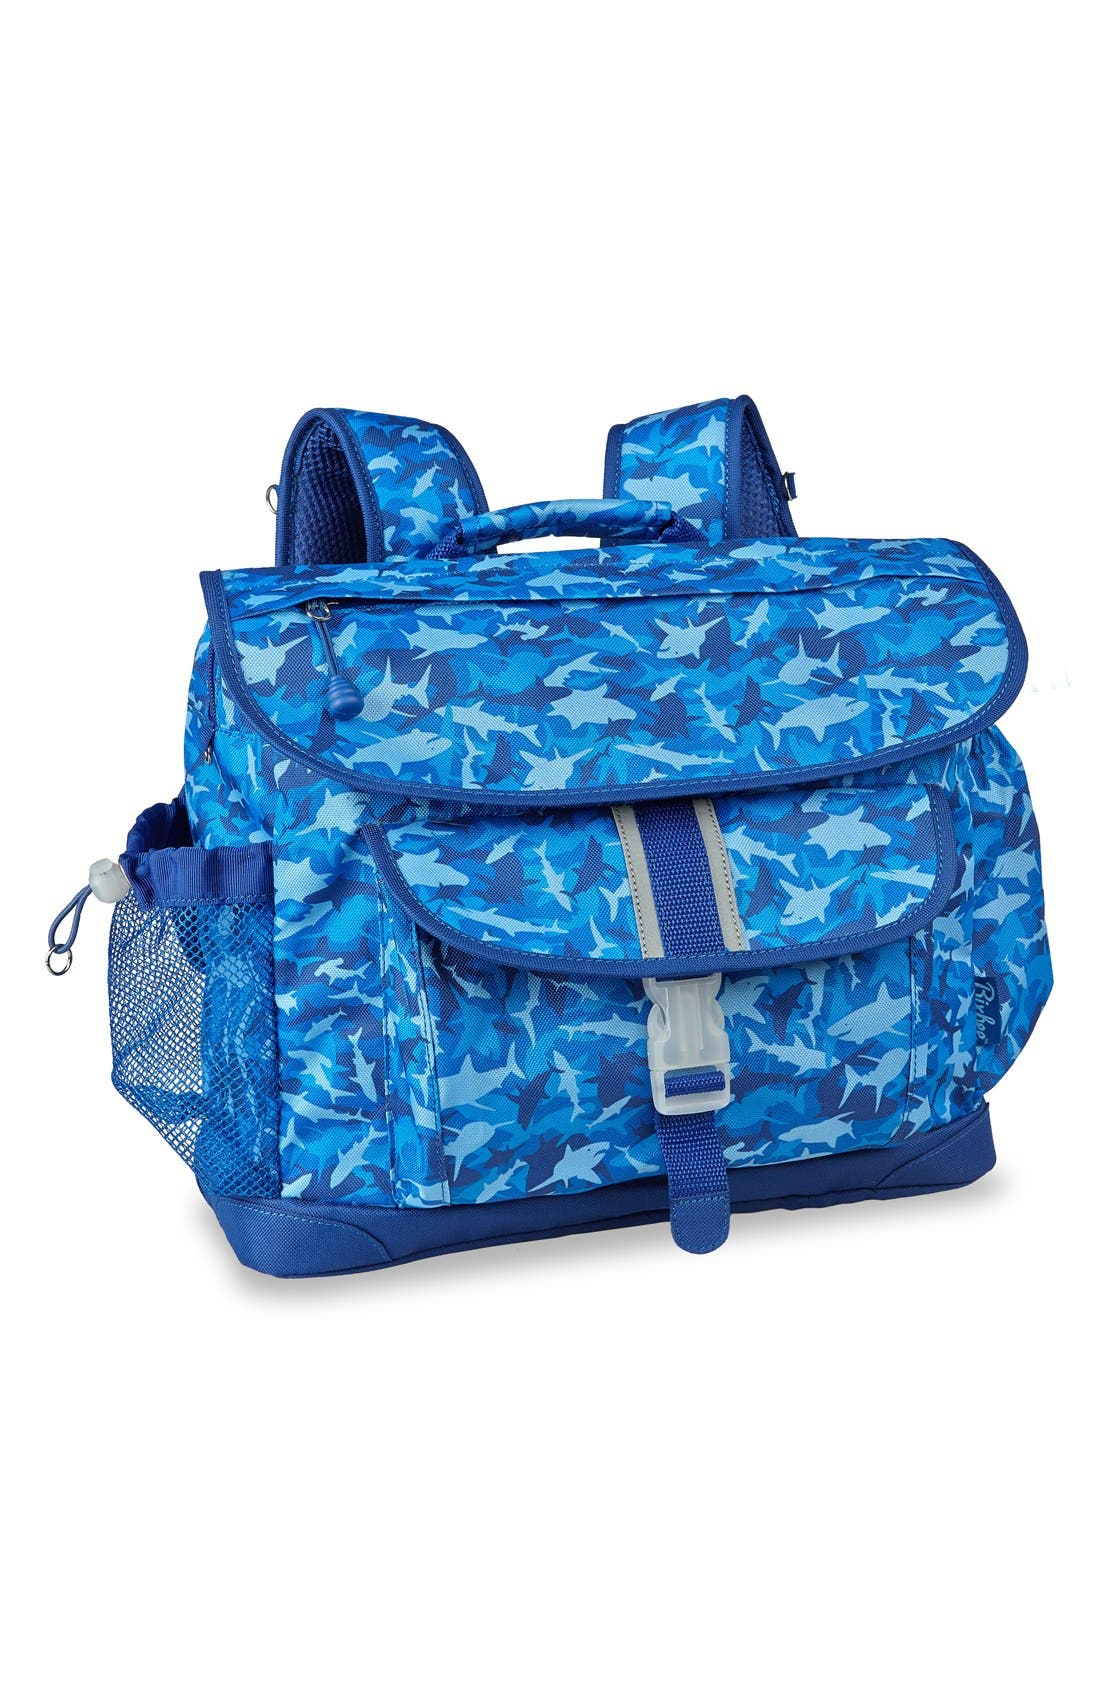 BIXBEE 'Large Shark Camo' Water Resistant Backpack